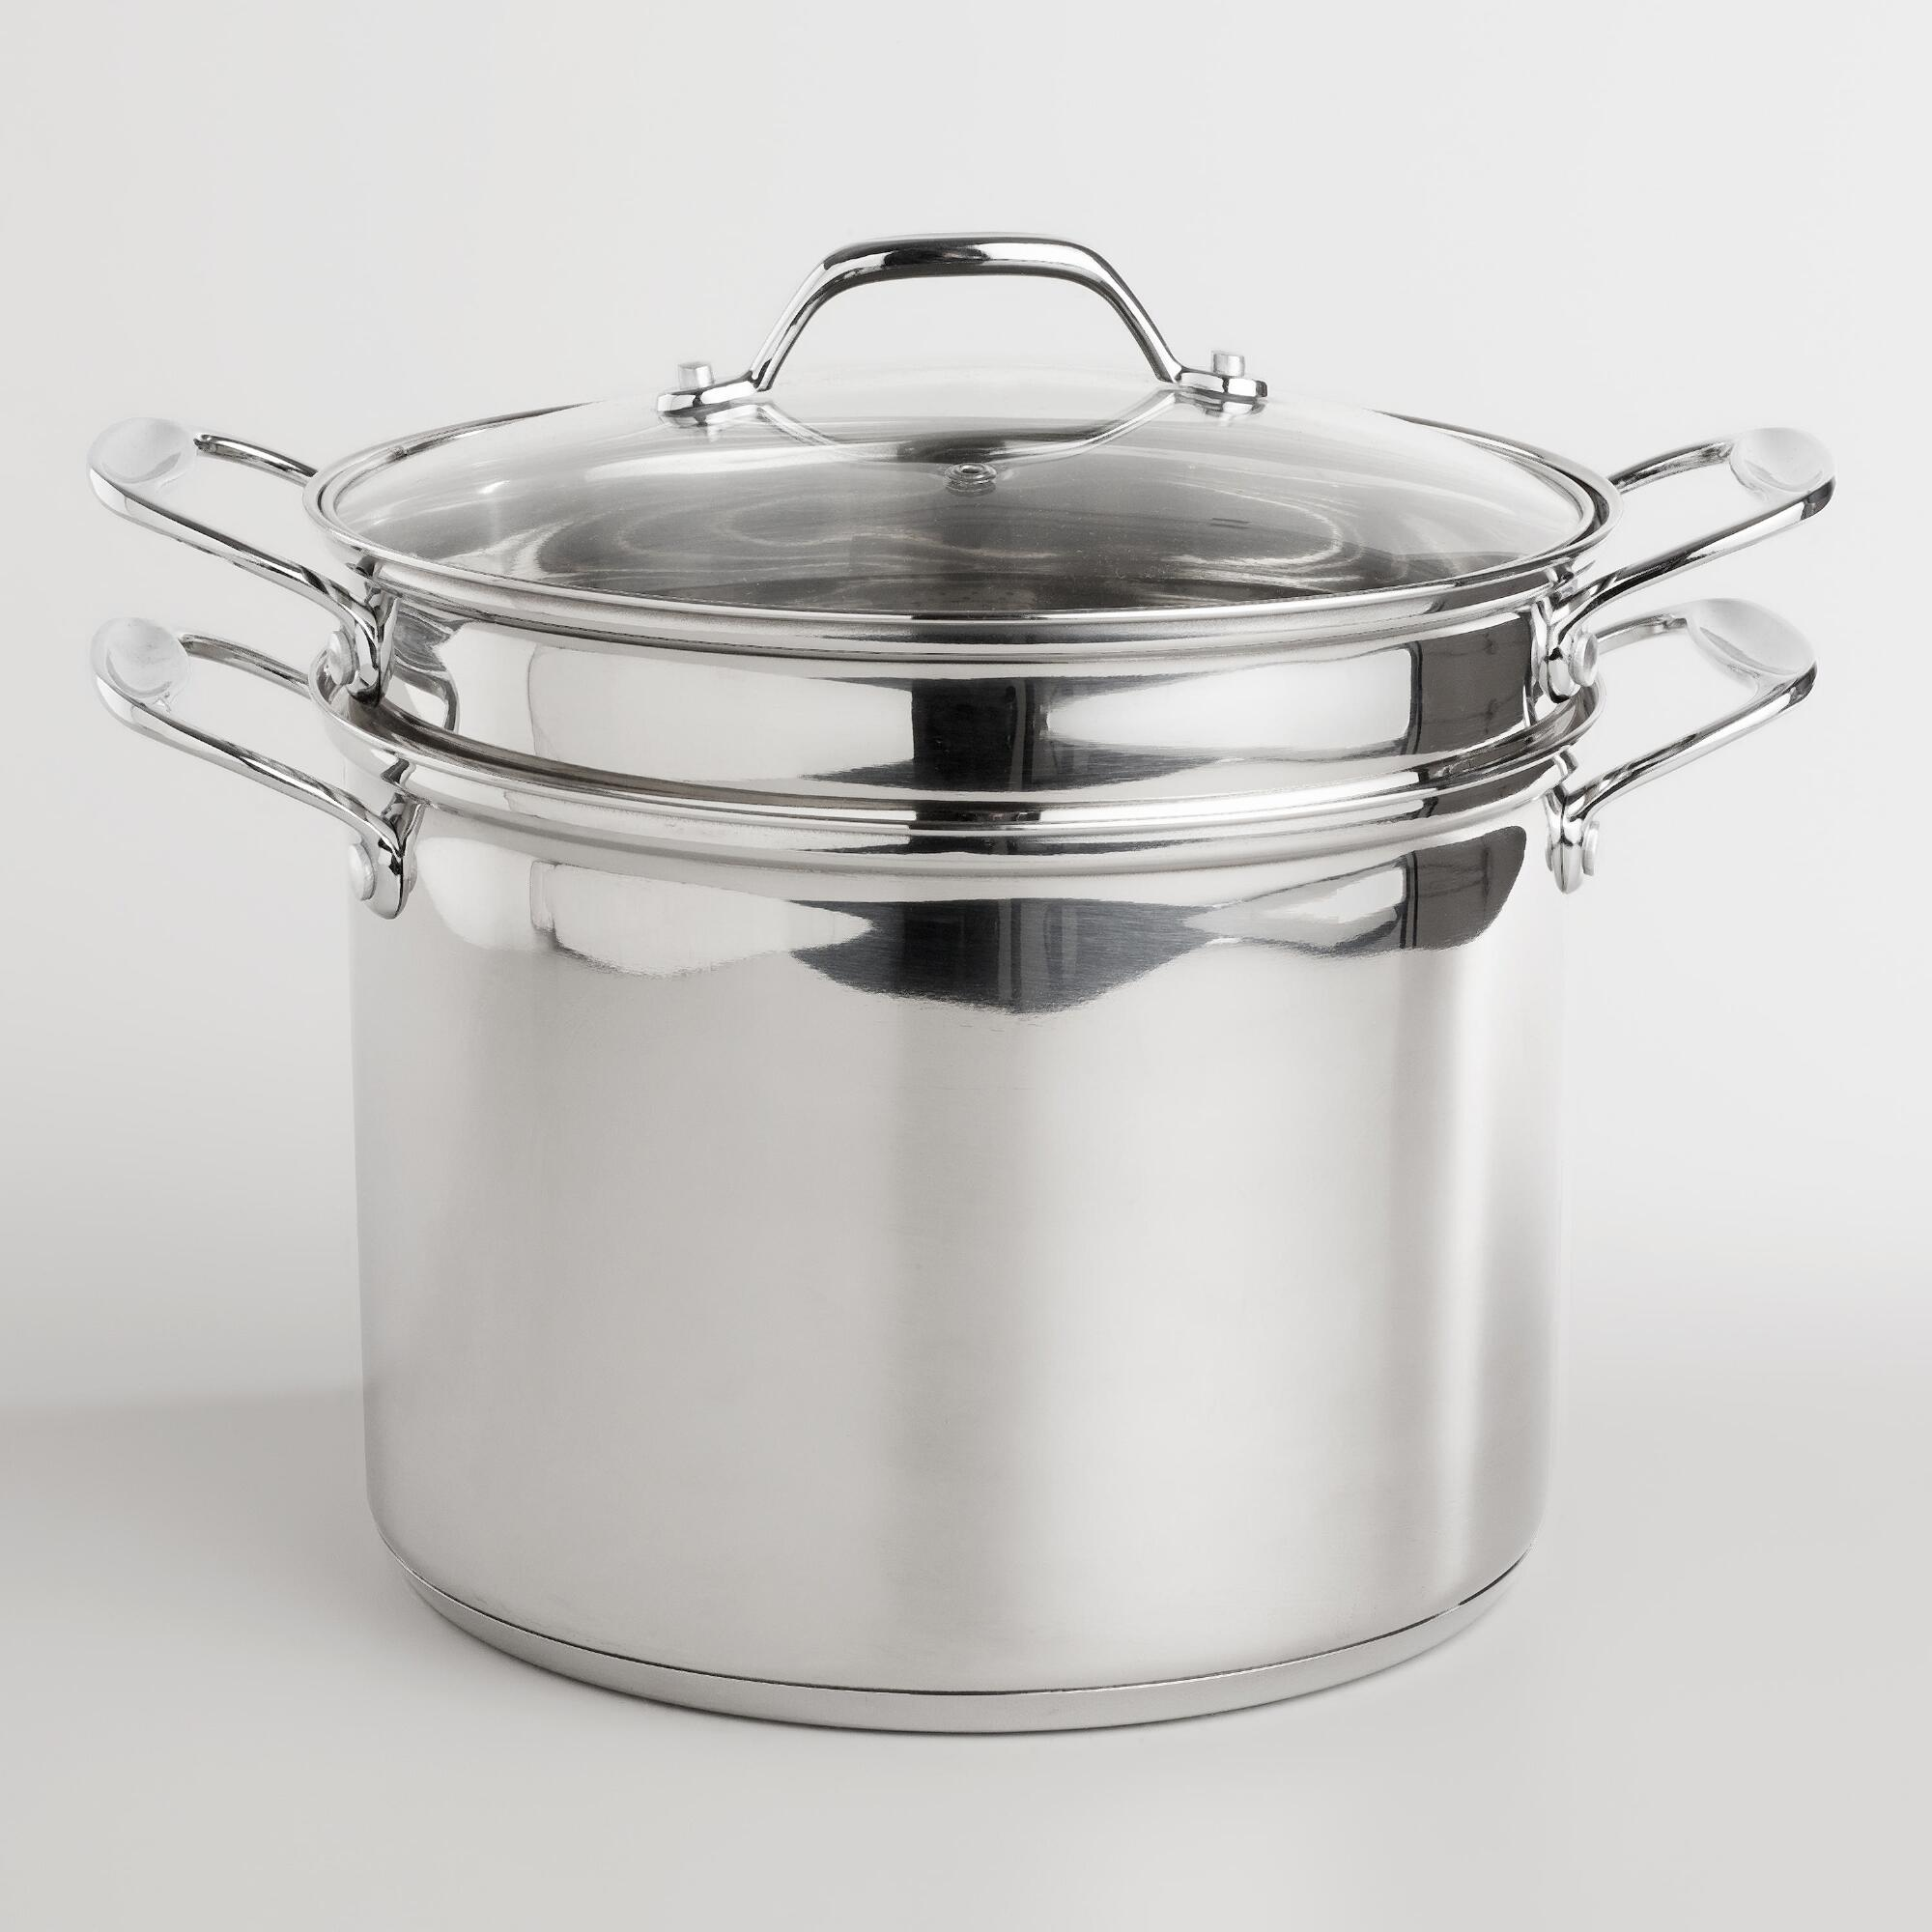 World Market Stainless Steel Pasta Pot with Tempered Glass Lid